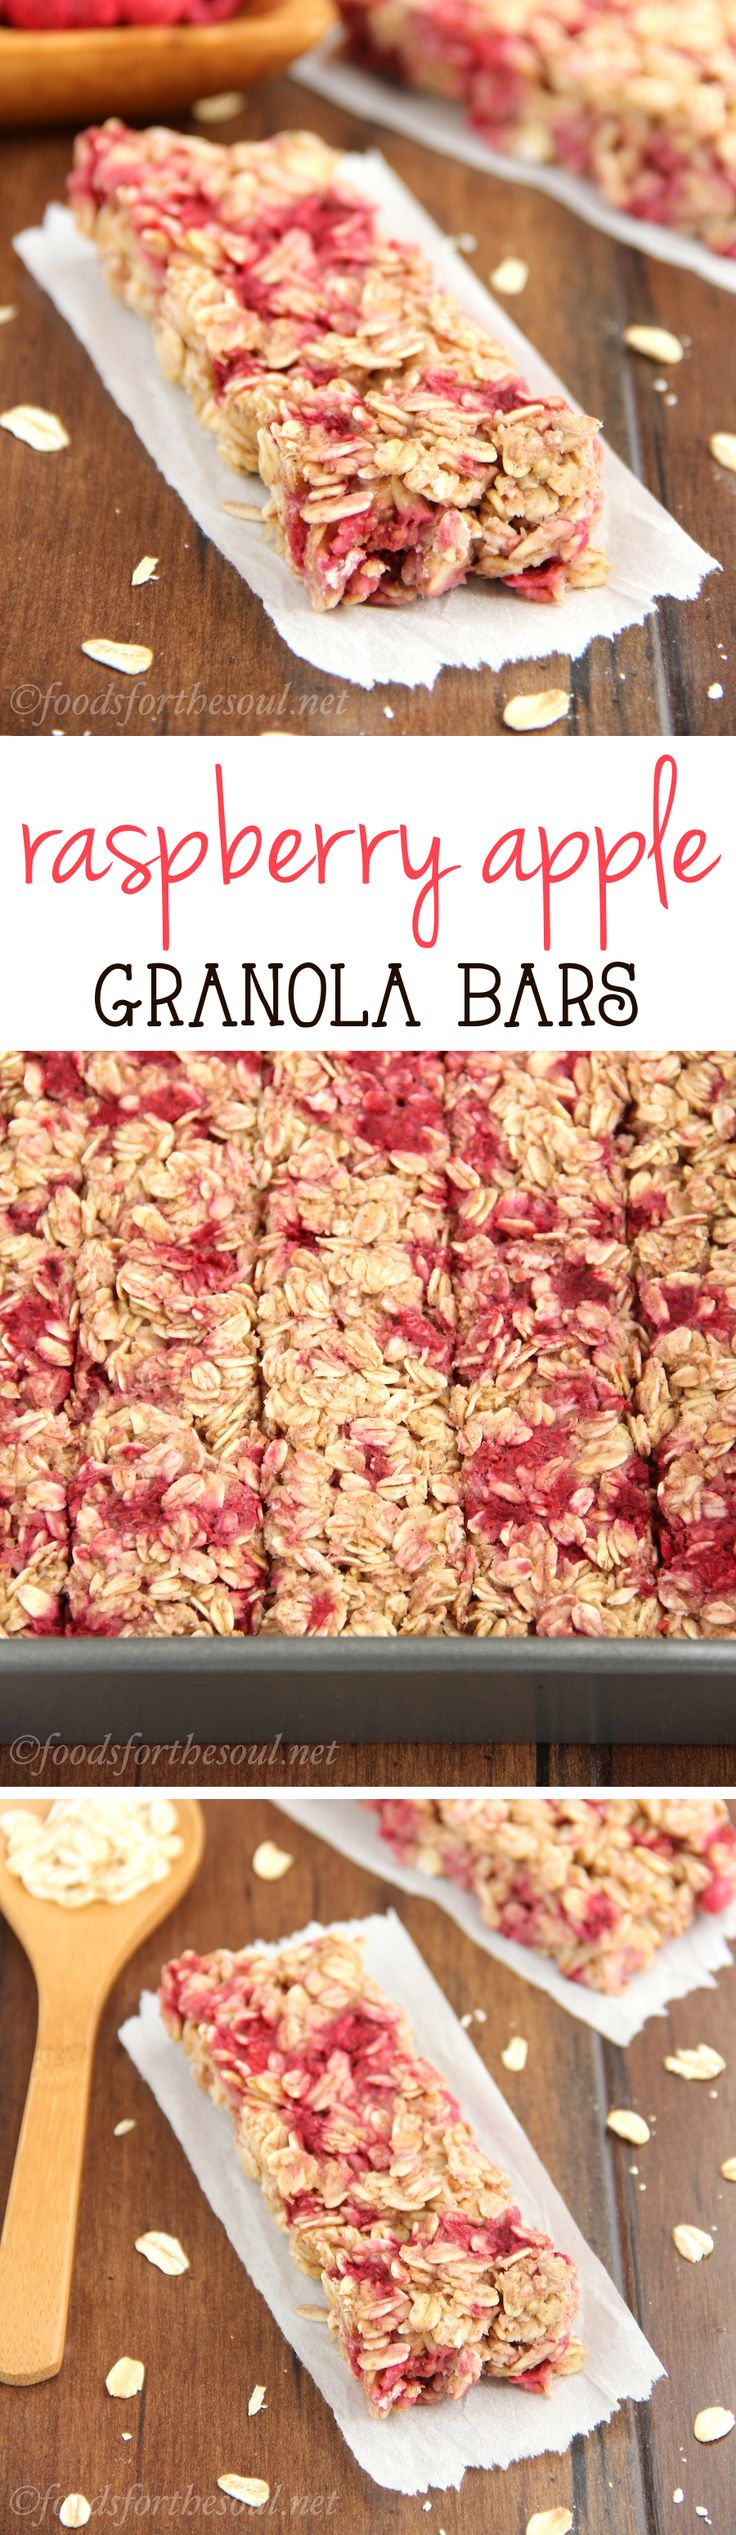 These tasty raspberry granola bars have a secret ingredient -- Mott's Applesauce!